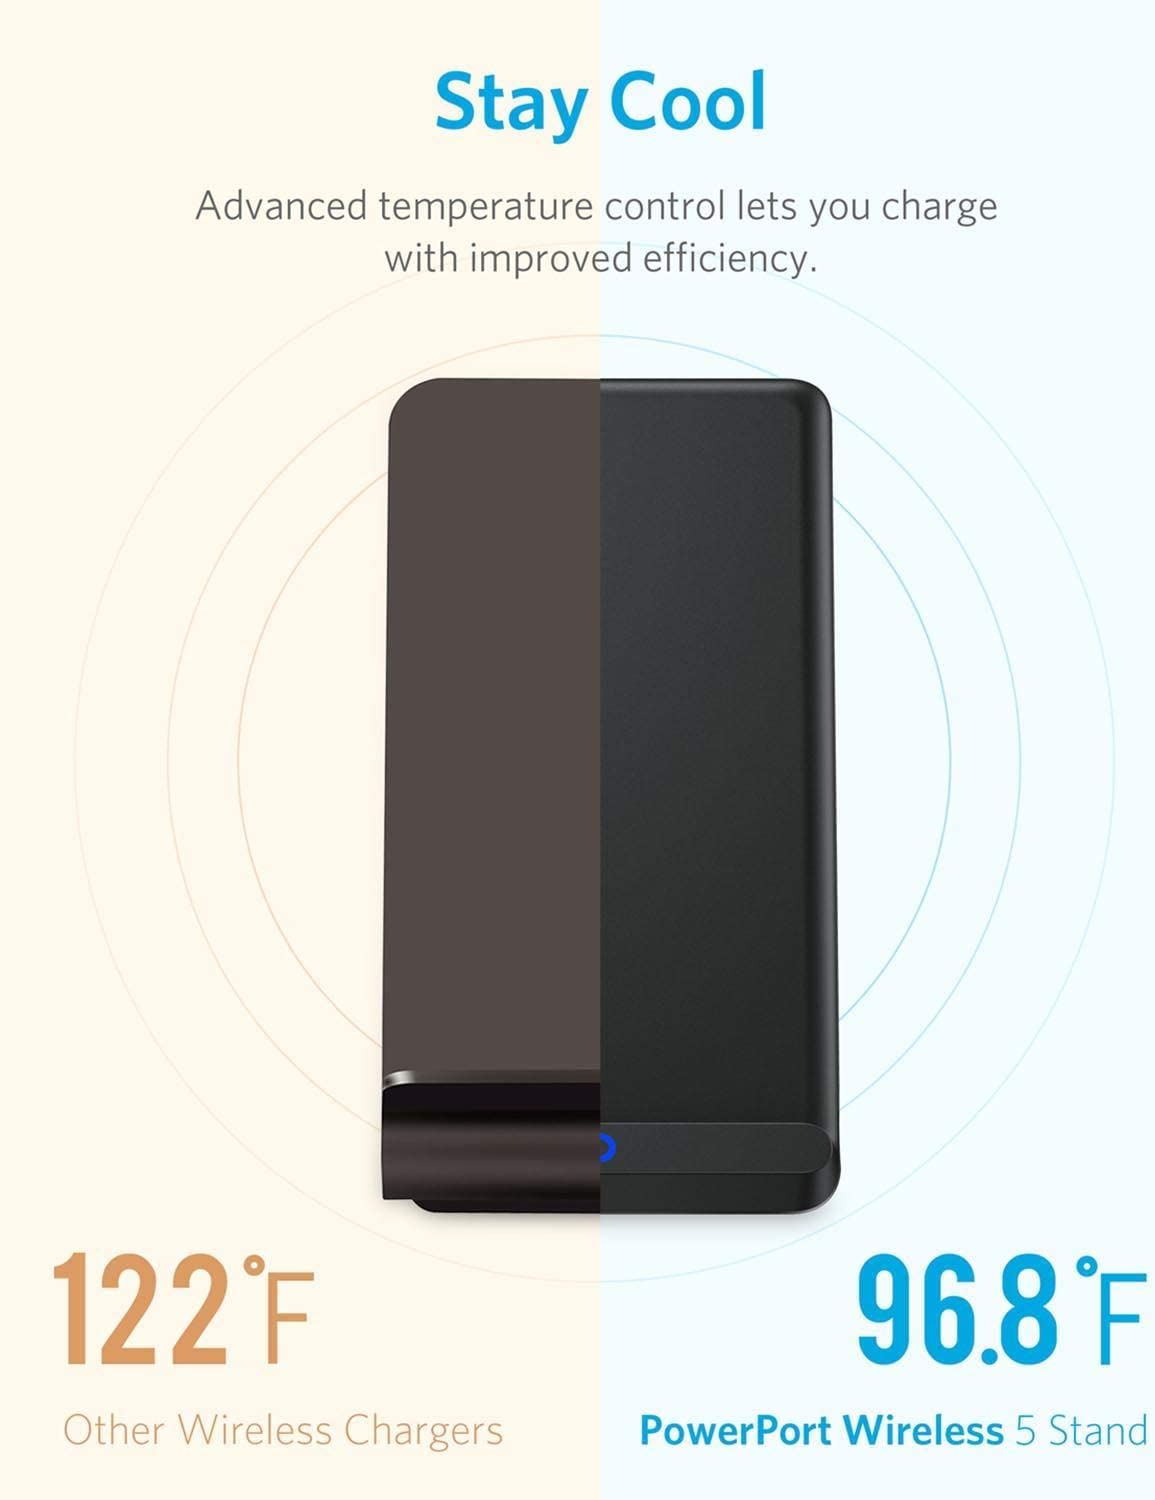 XS No AC Adapter Compatible iPhone 11 X Anker Wireless Charger Samsung Galaxy S20 S10 S9 S8 8 Plus XR Qi-Certified 11 Pro PowerPort Wireless 5 Stand Note 10 Note 9 8 XS Max 11 Pro Max